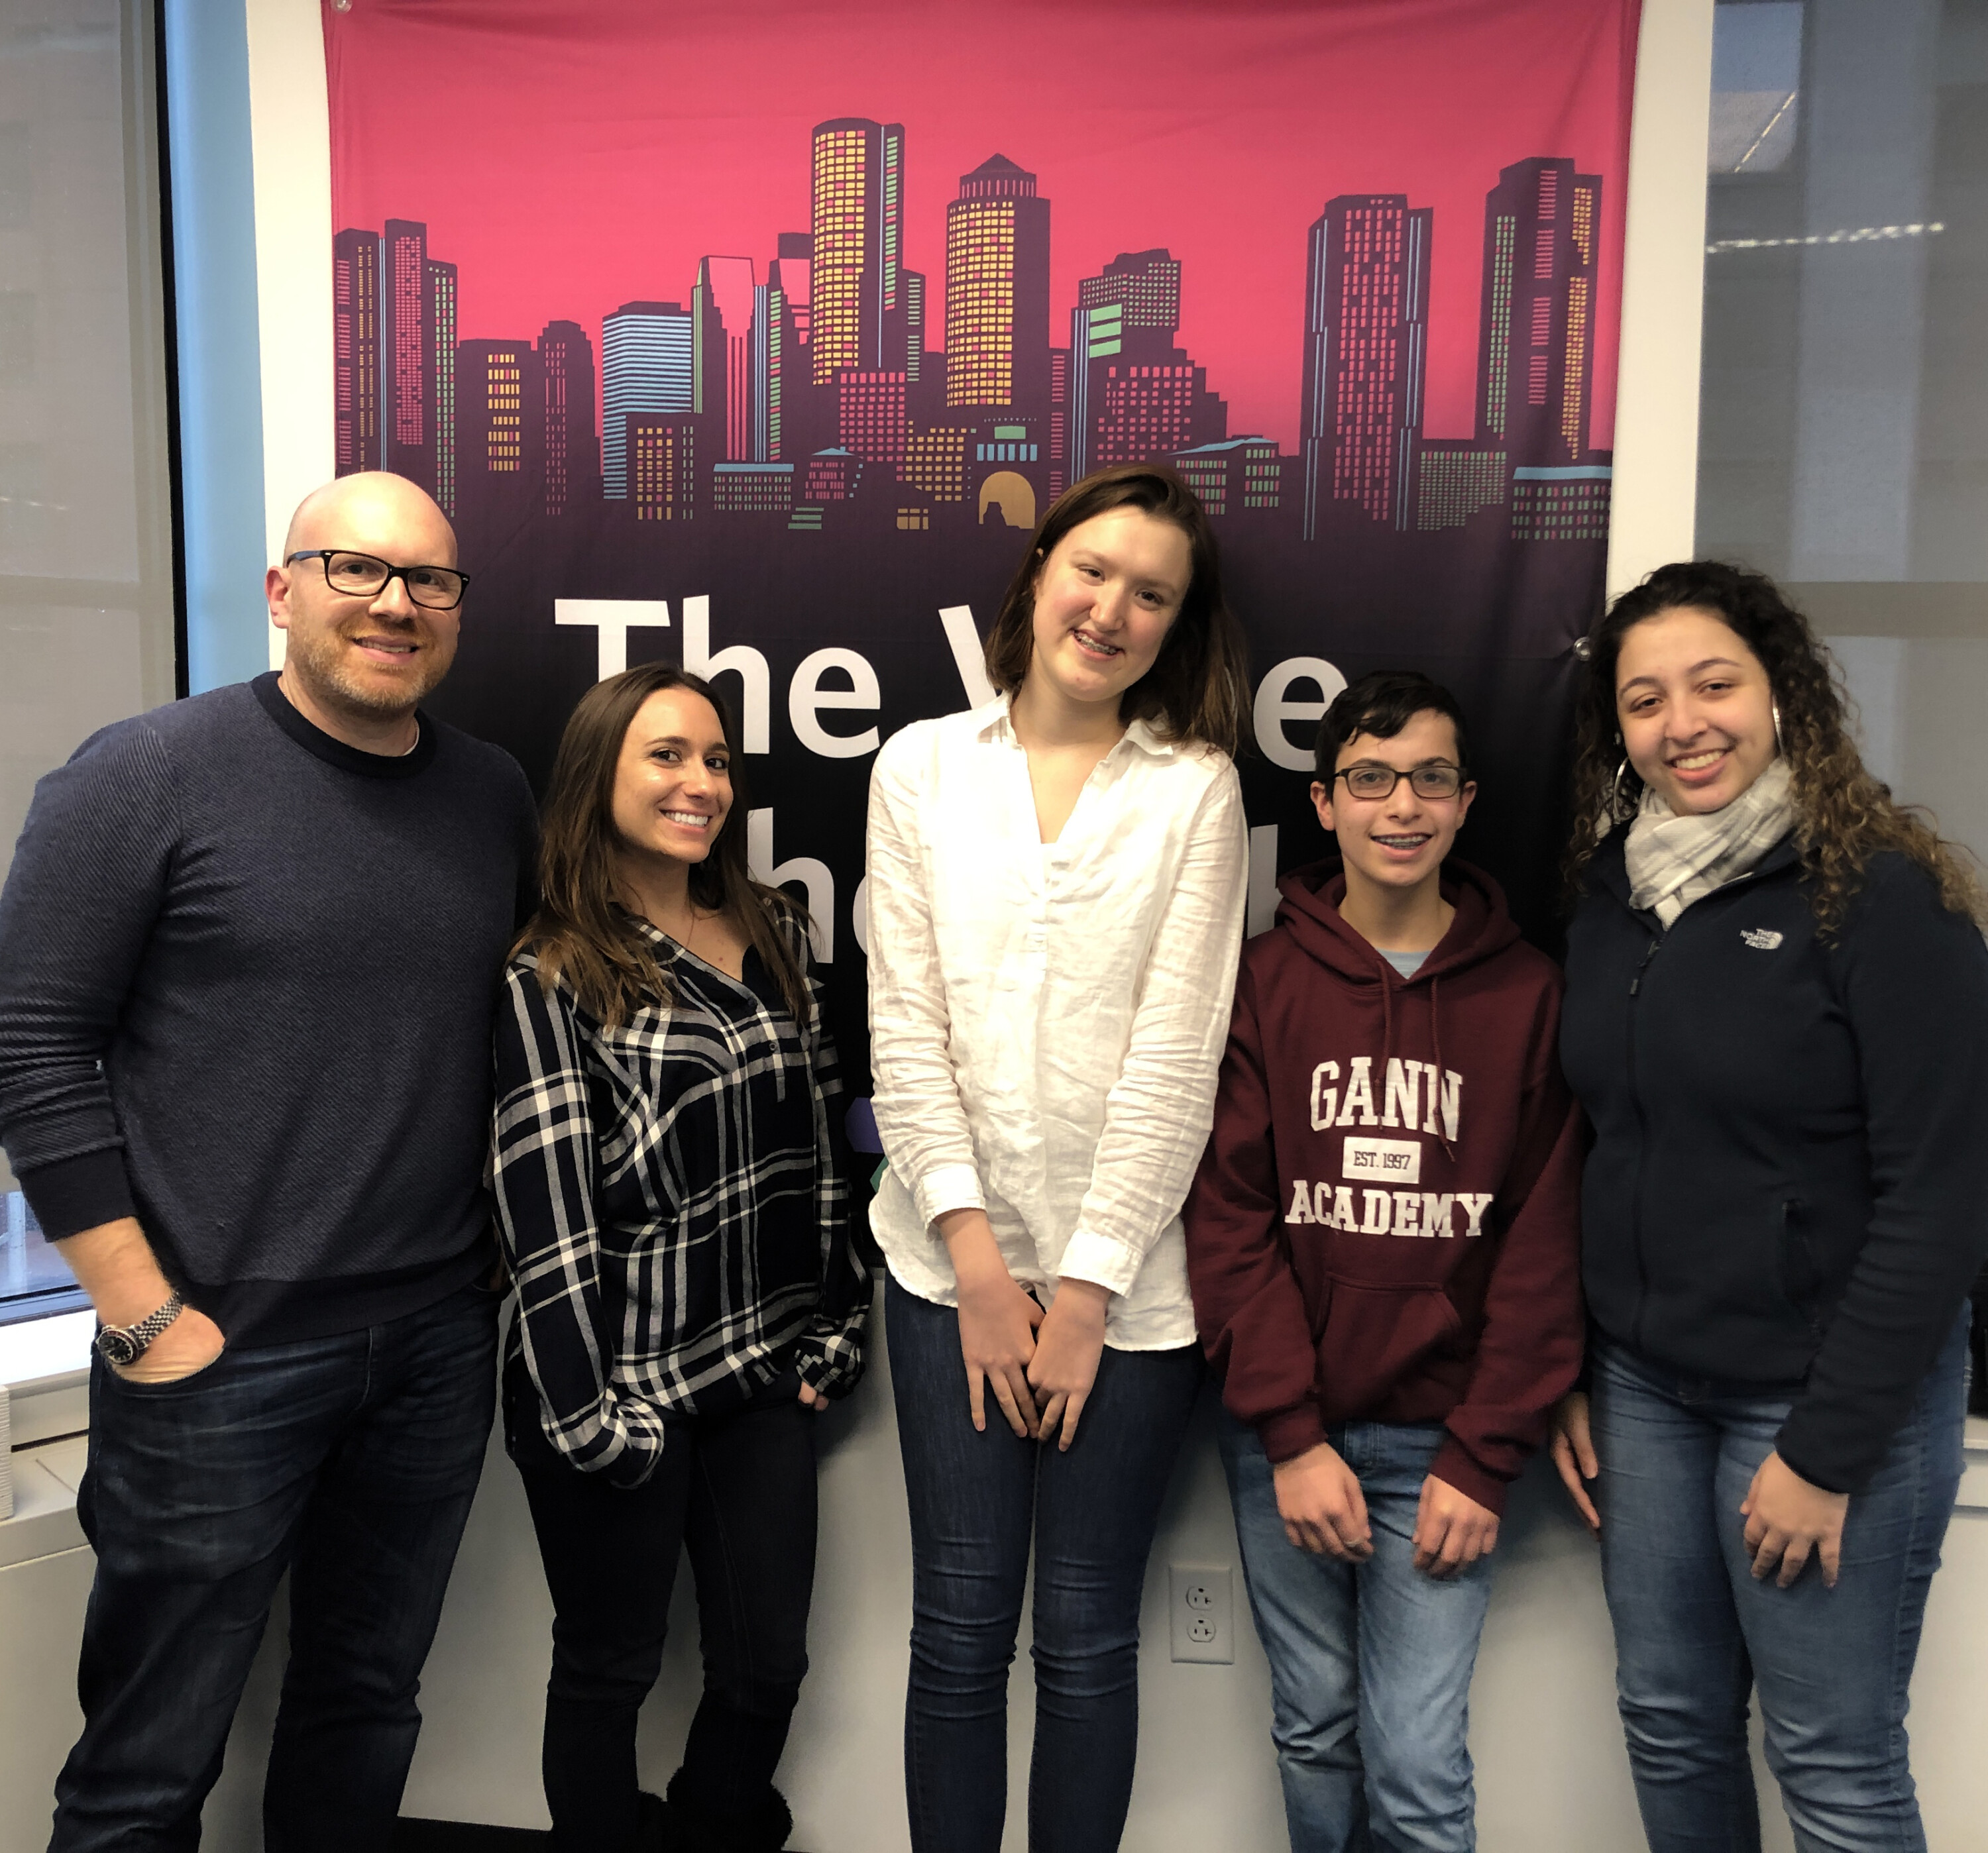 From left: Hosts Dan Seligson and Ashley Jacobs with guests Isabelle, Shalev and Reyand (Photo: Miriam Anzovin)